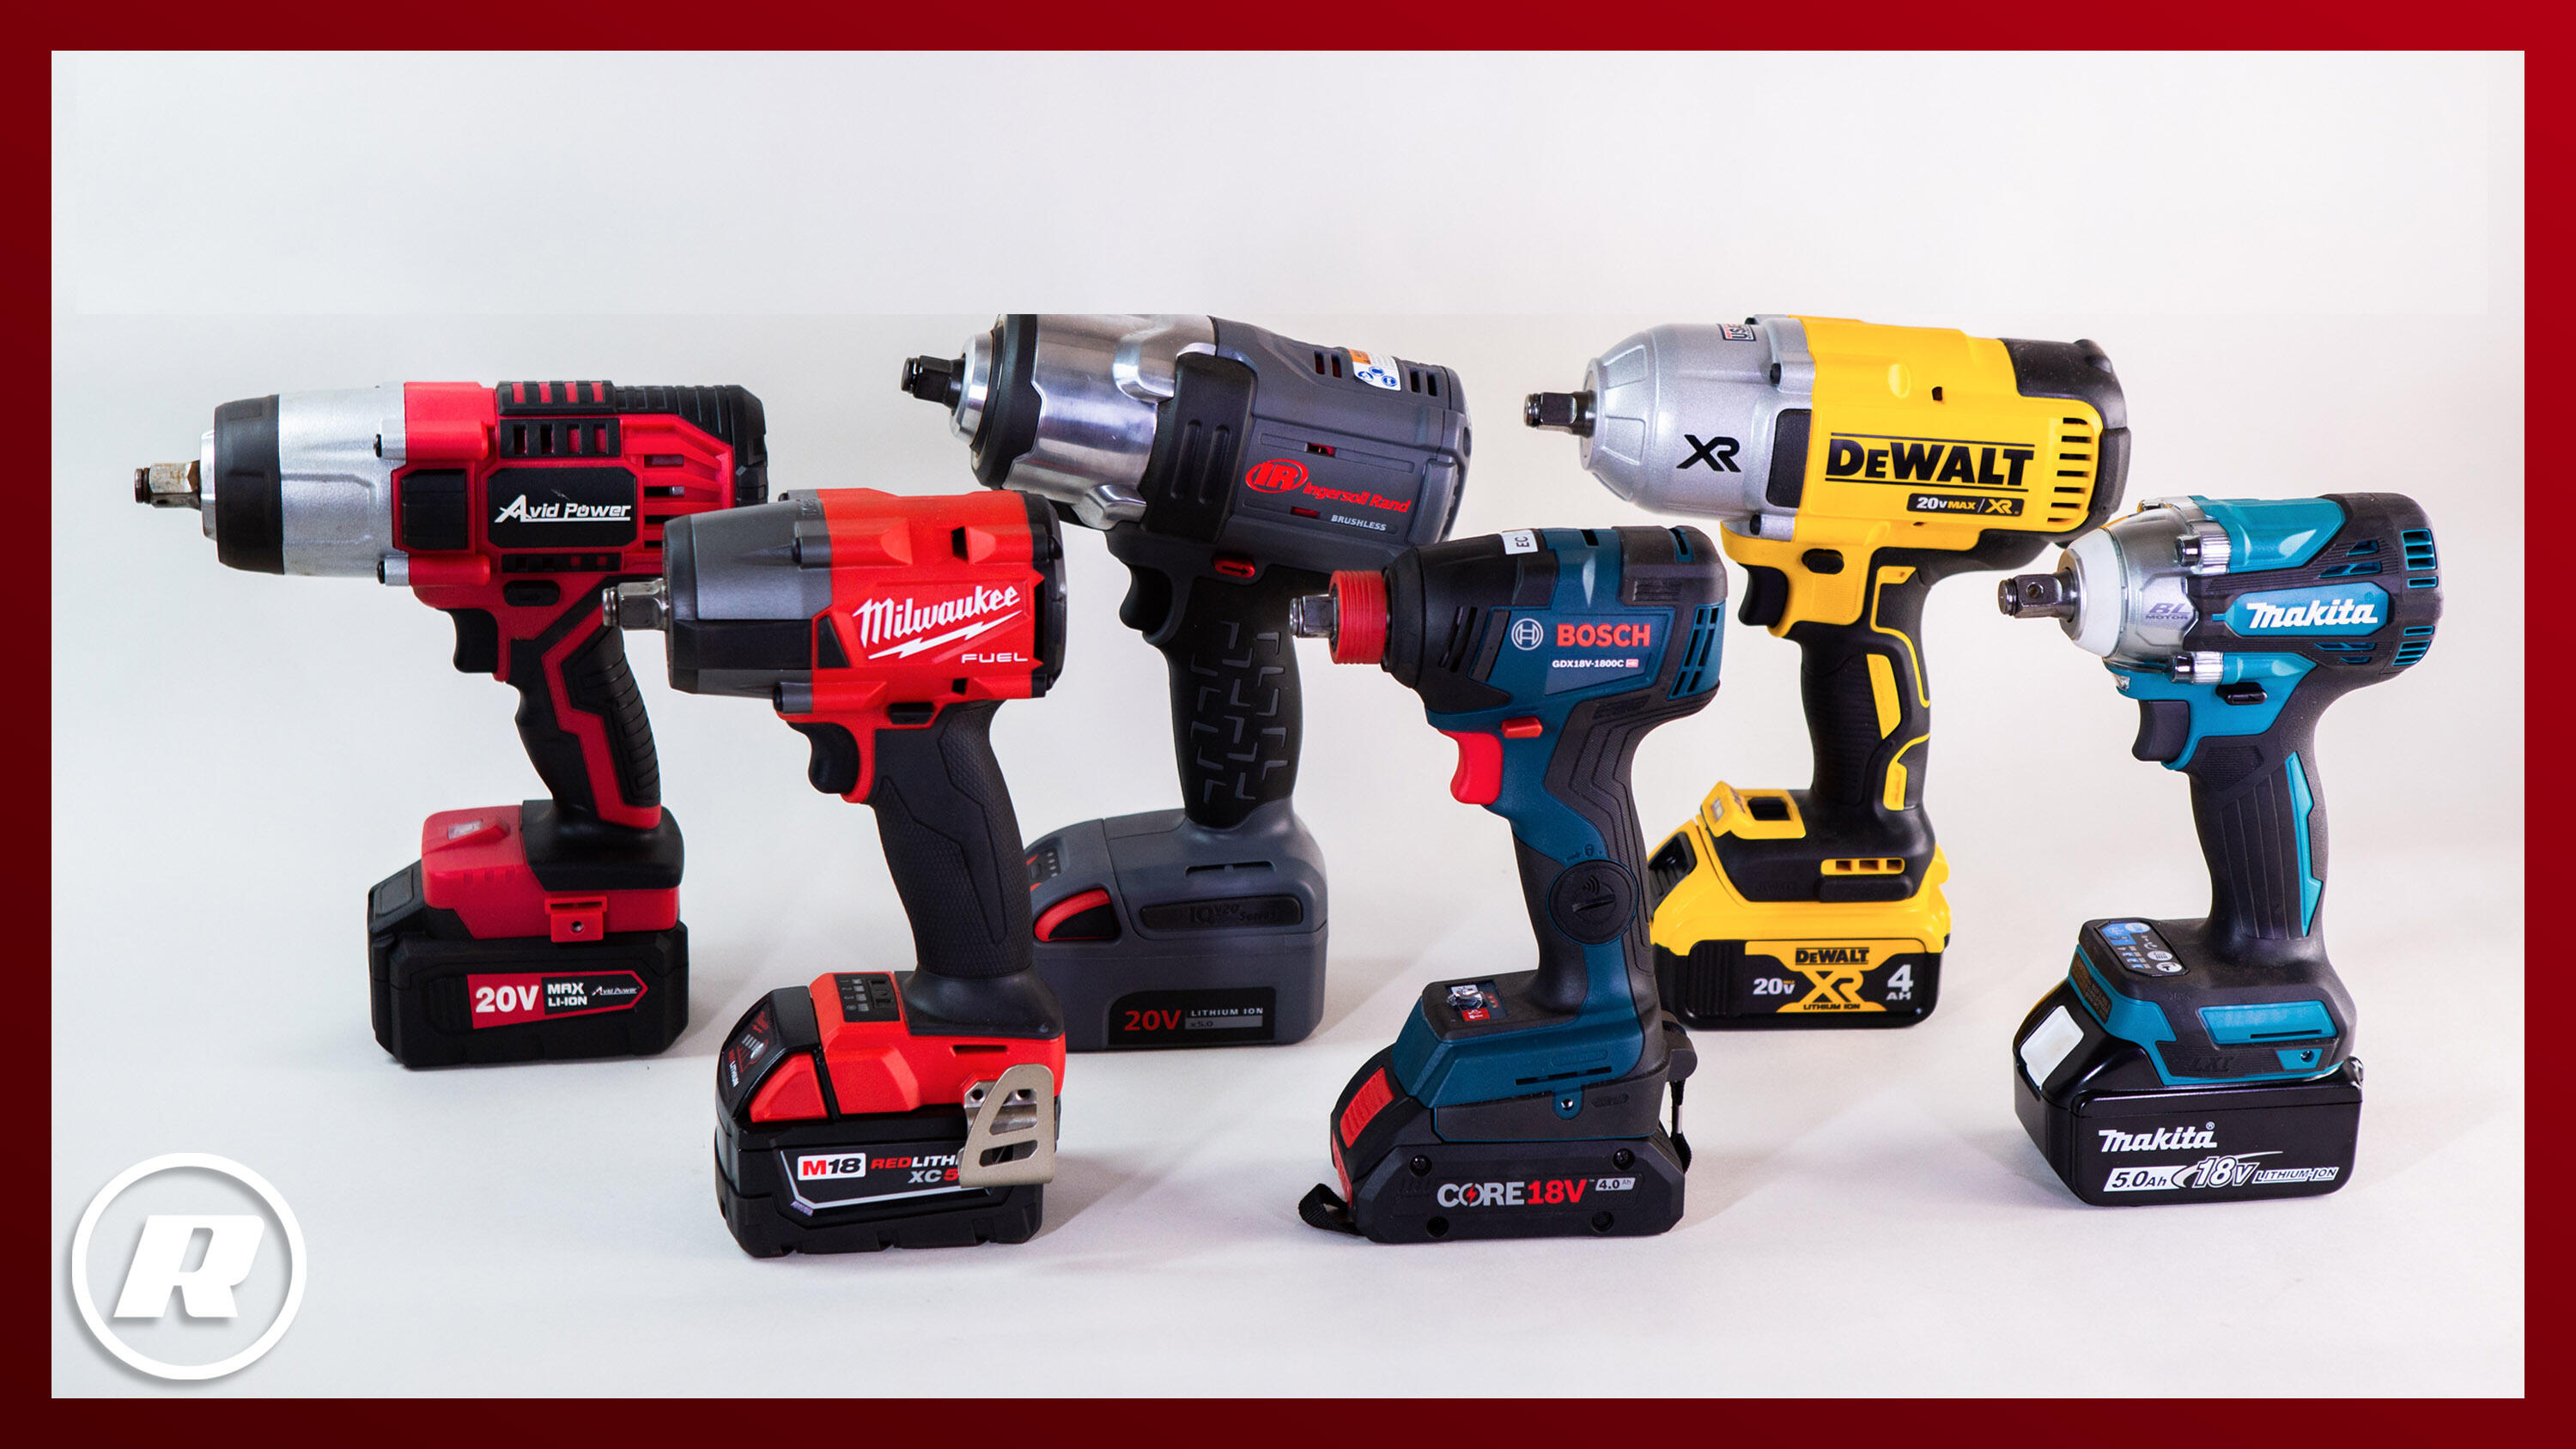 Video: The best cordless impact wrenches you can buy